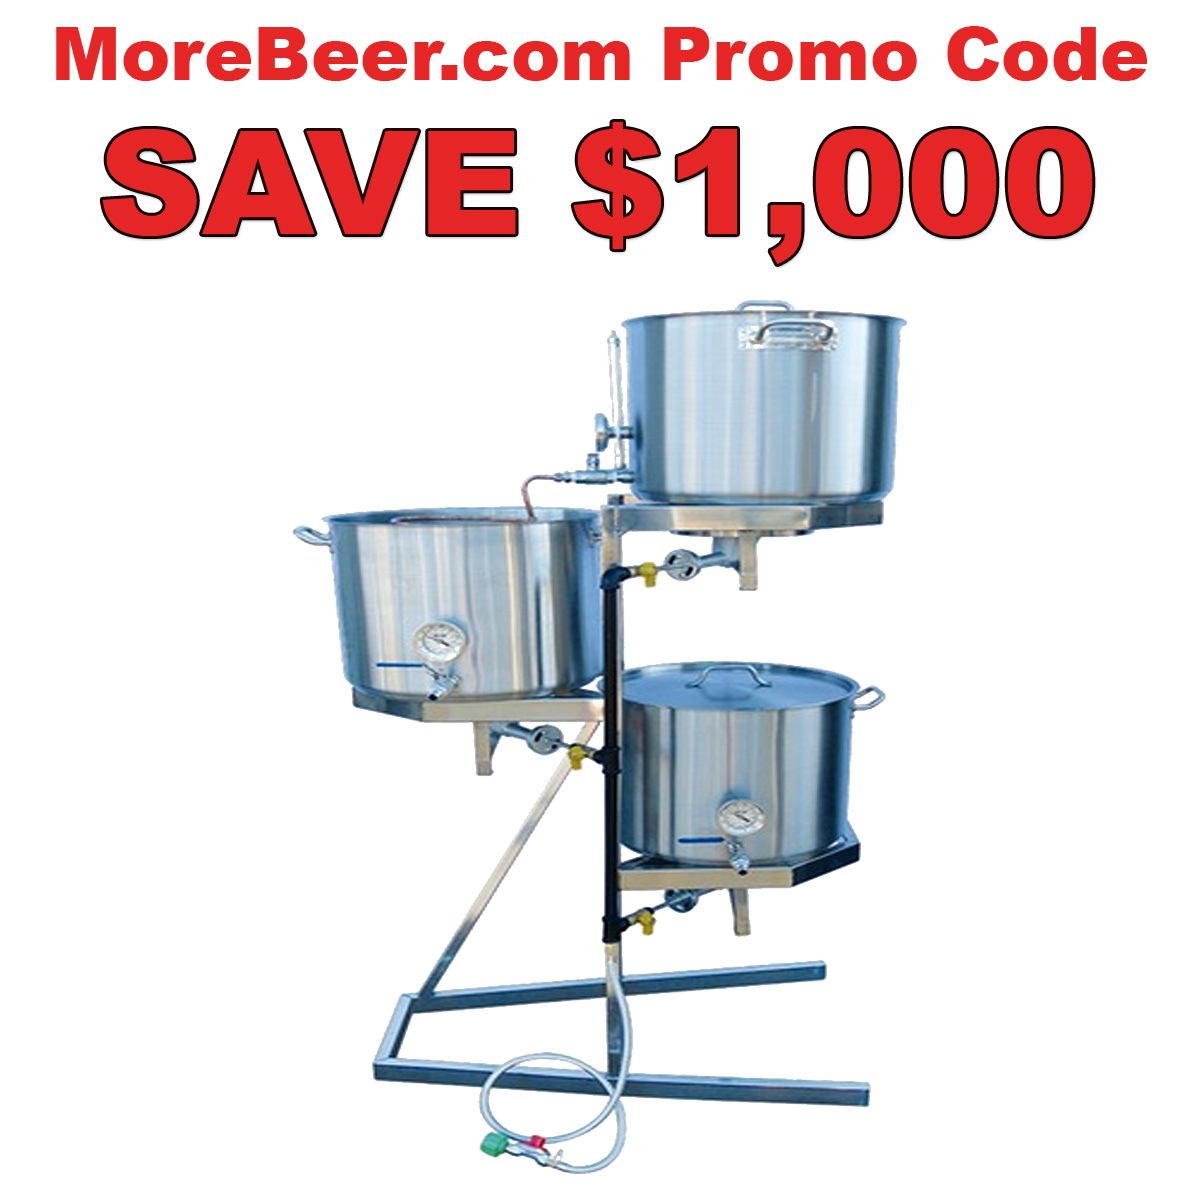 MoreBeer Save $1,000 On A More Beer Homebrewing System with this MoreBeer.com Promo Code Coupon Code